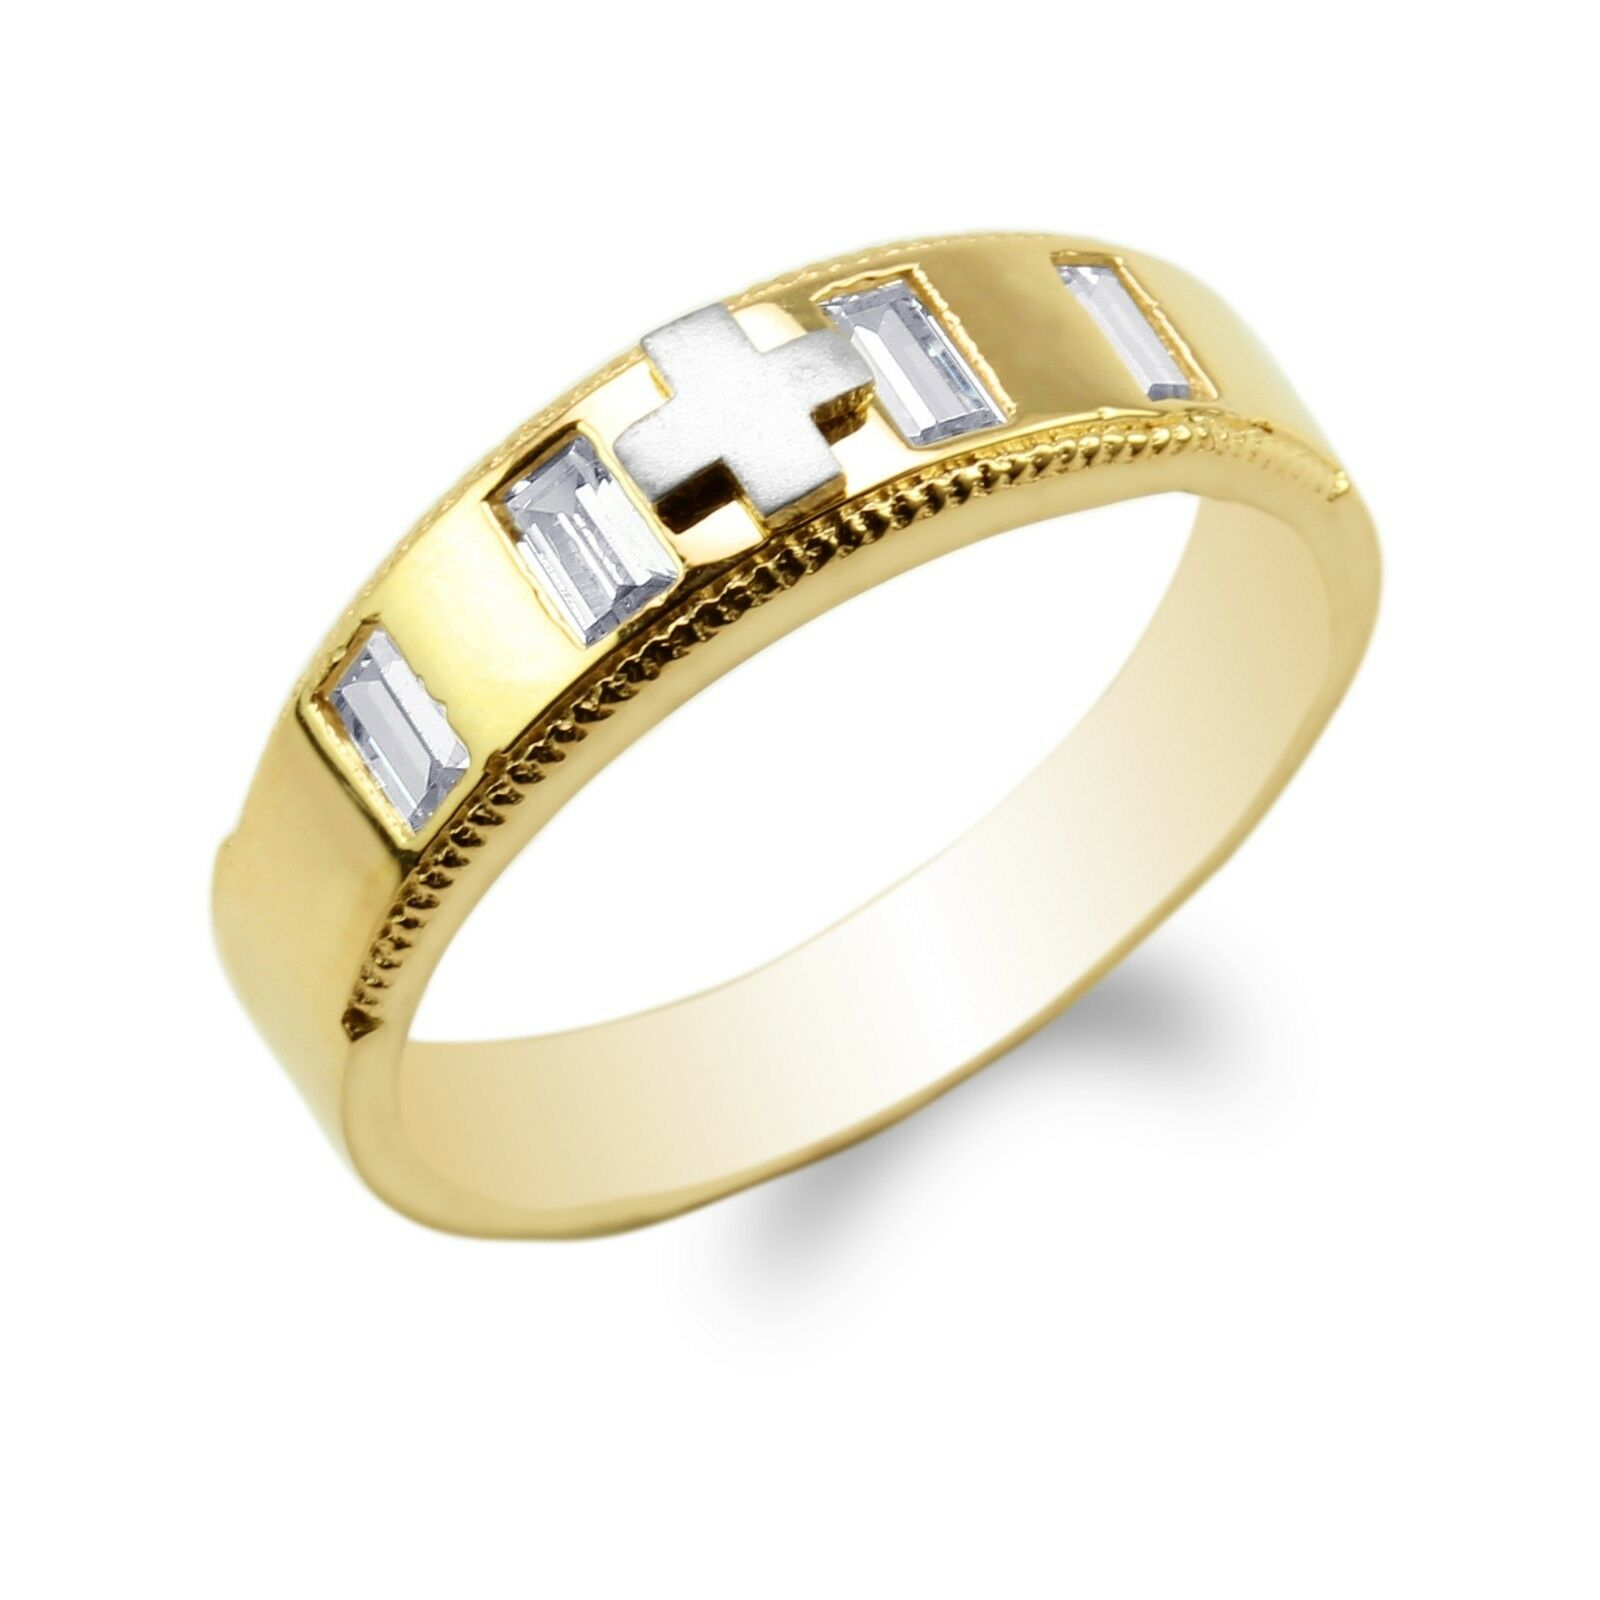 10K 14K Yellow gold Two Tone Baguette CZ Embedded Cross Wedding Ring Size 7-11